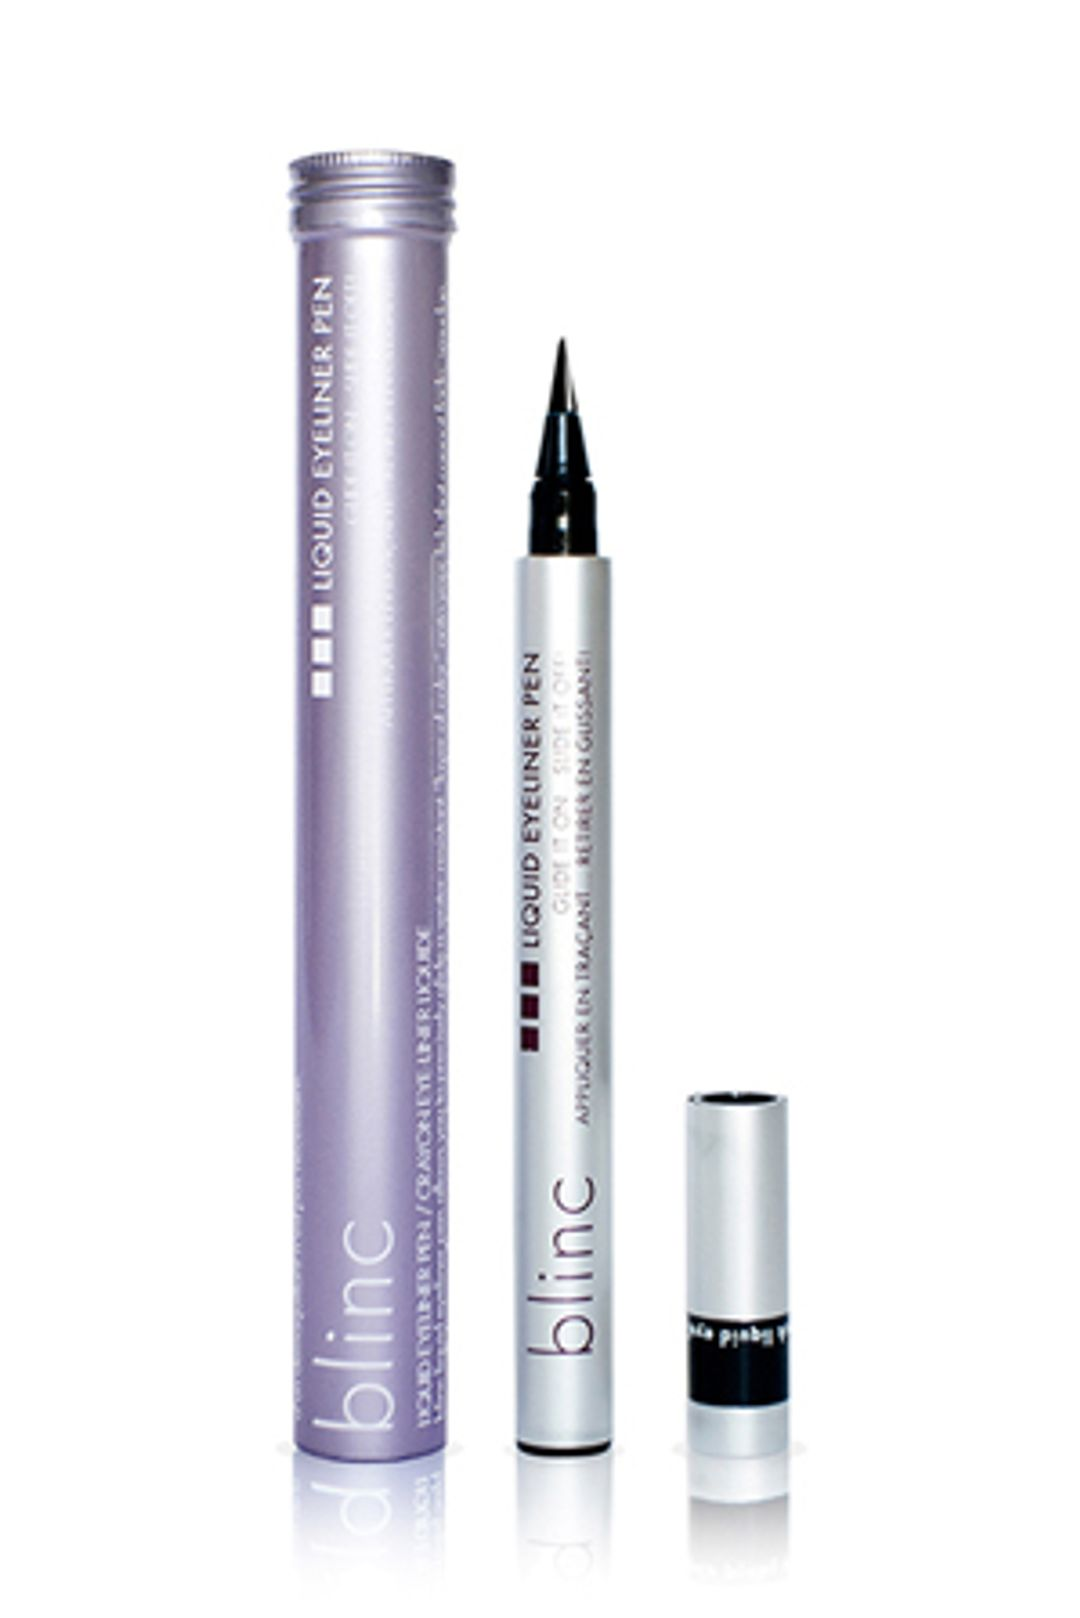 Blinc - Liquid Eyeliner Pen - Black